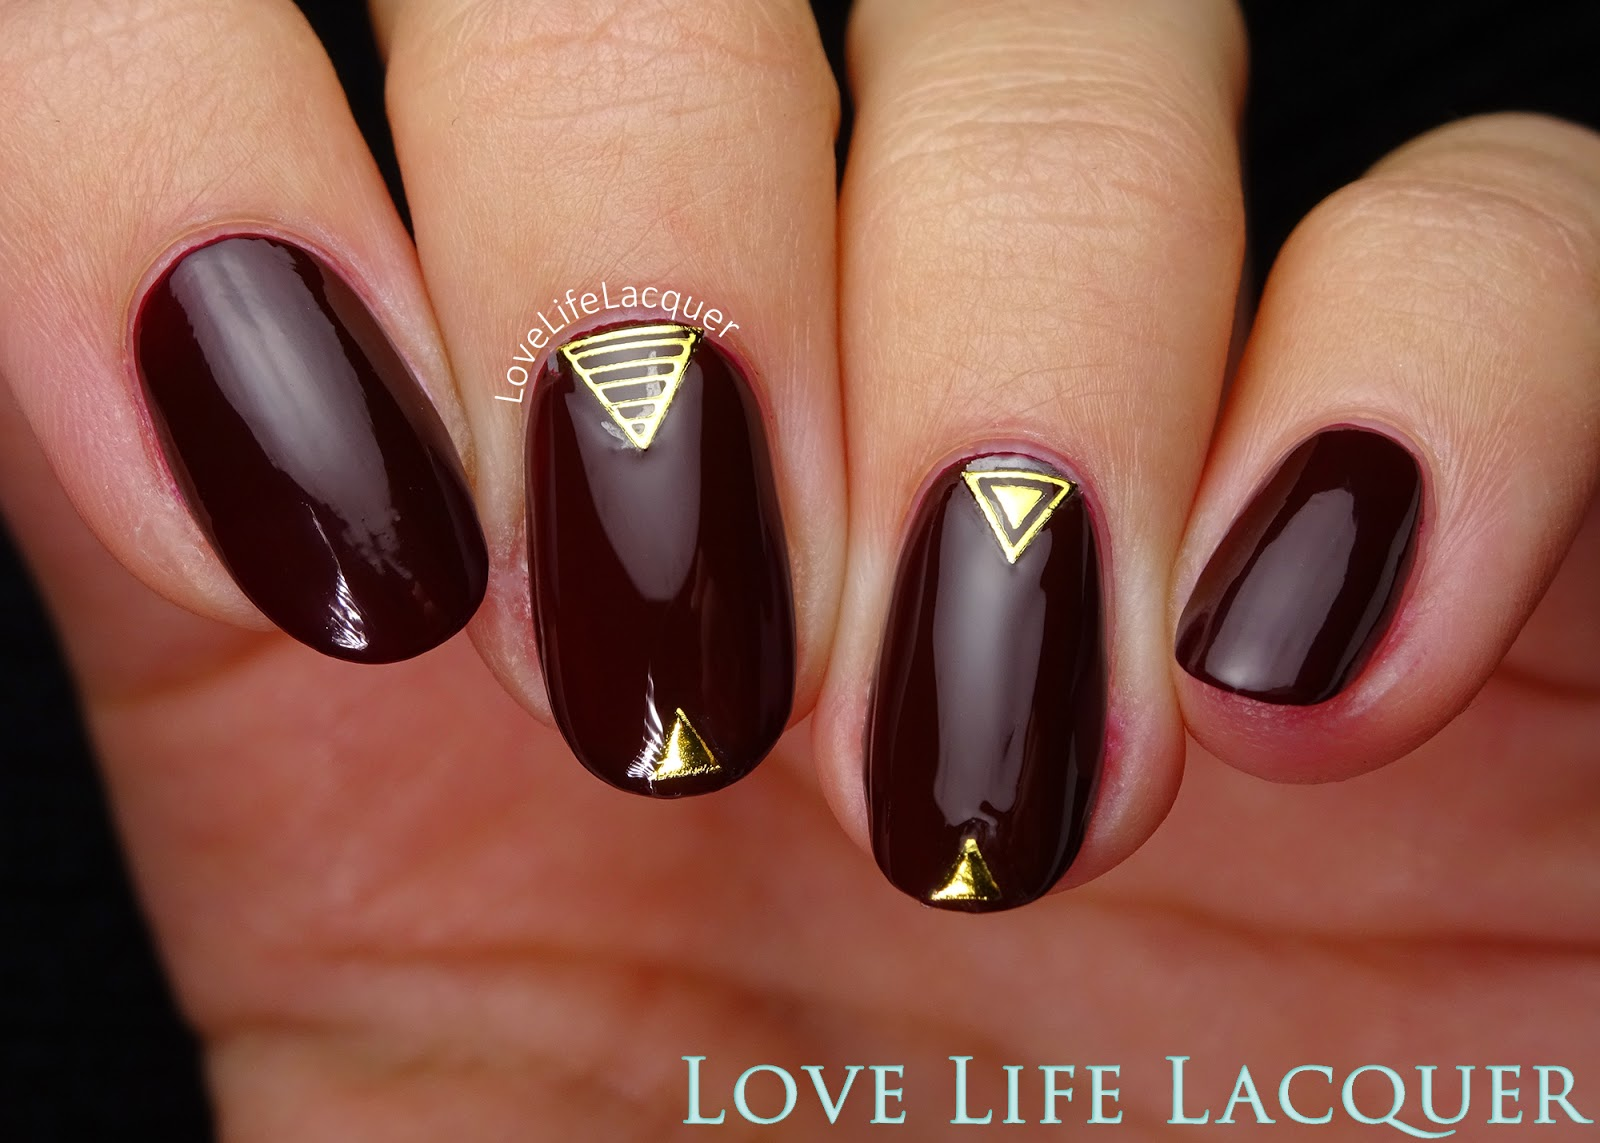 Love life lacquer pronails new icon gold sticker nail art pro nails new icon swatch nail art prinsesfo Images